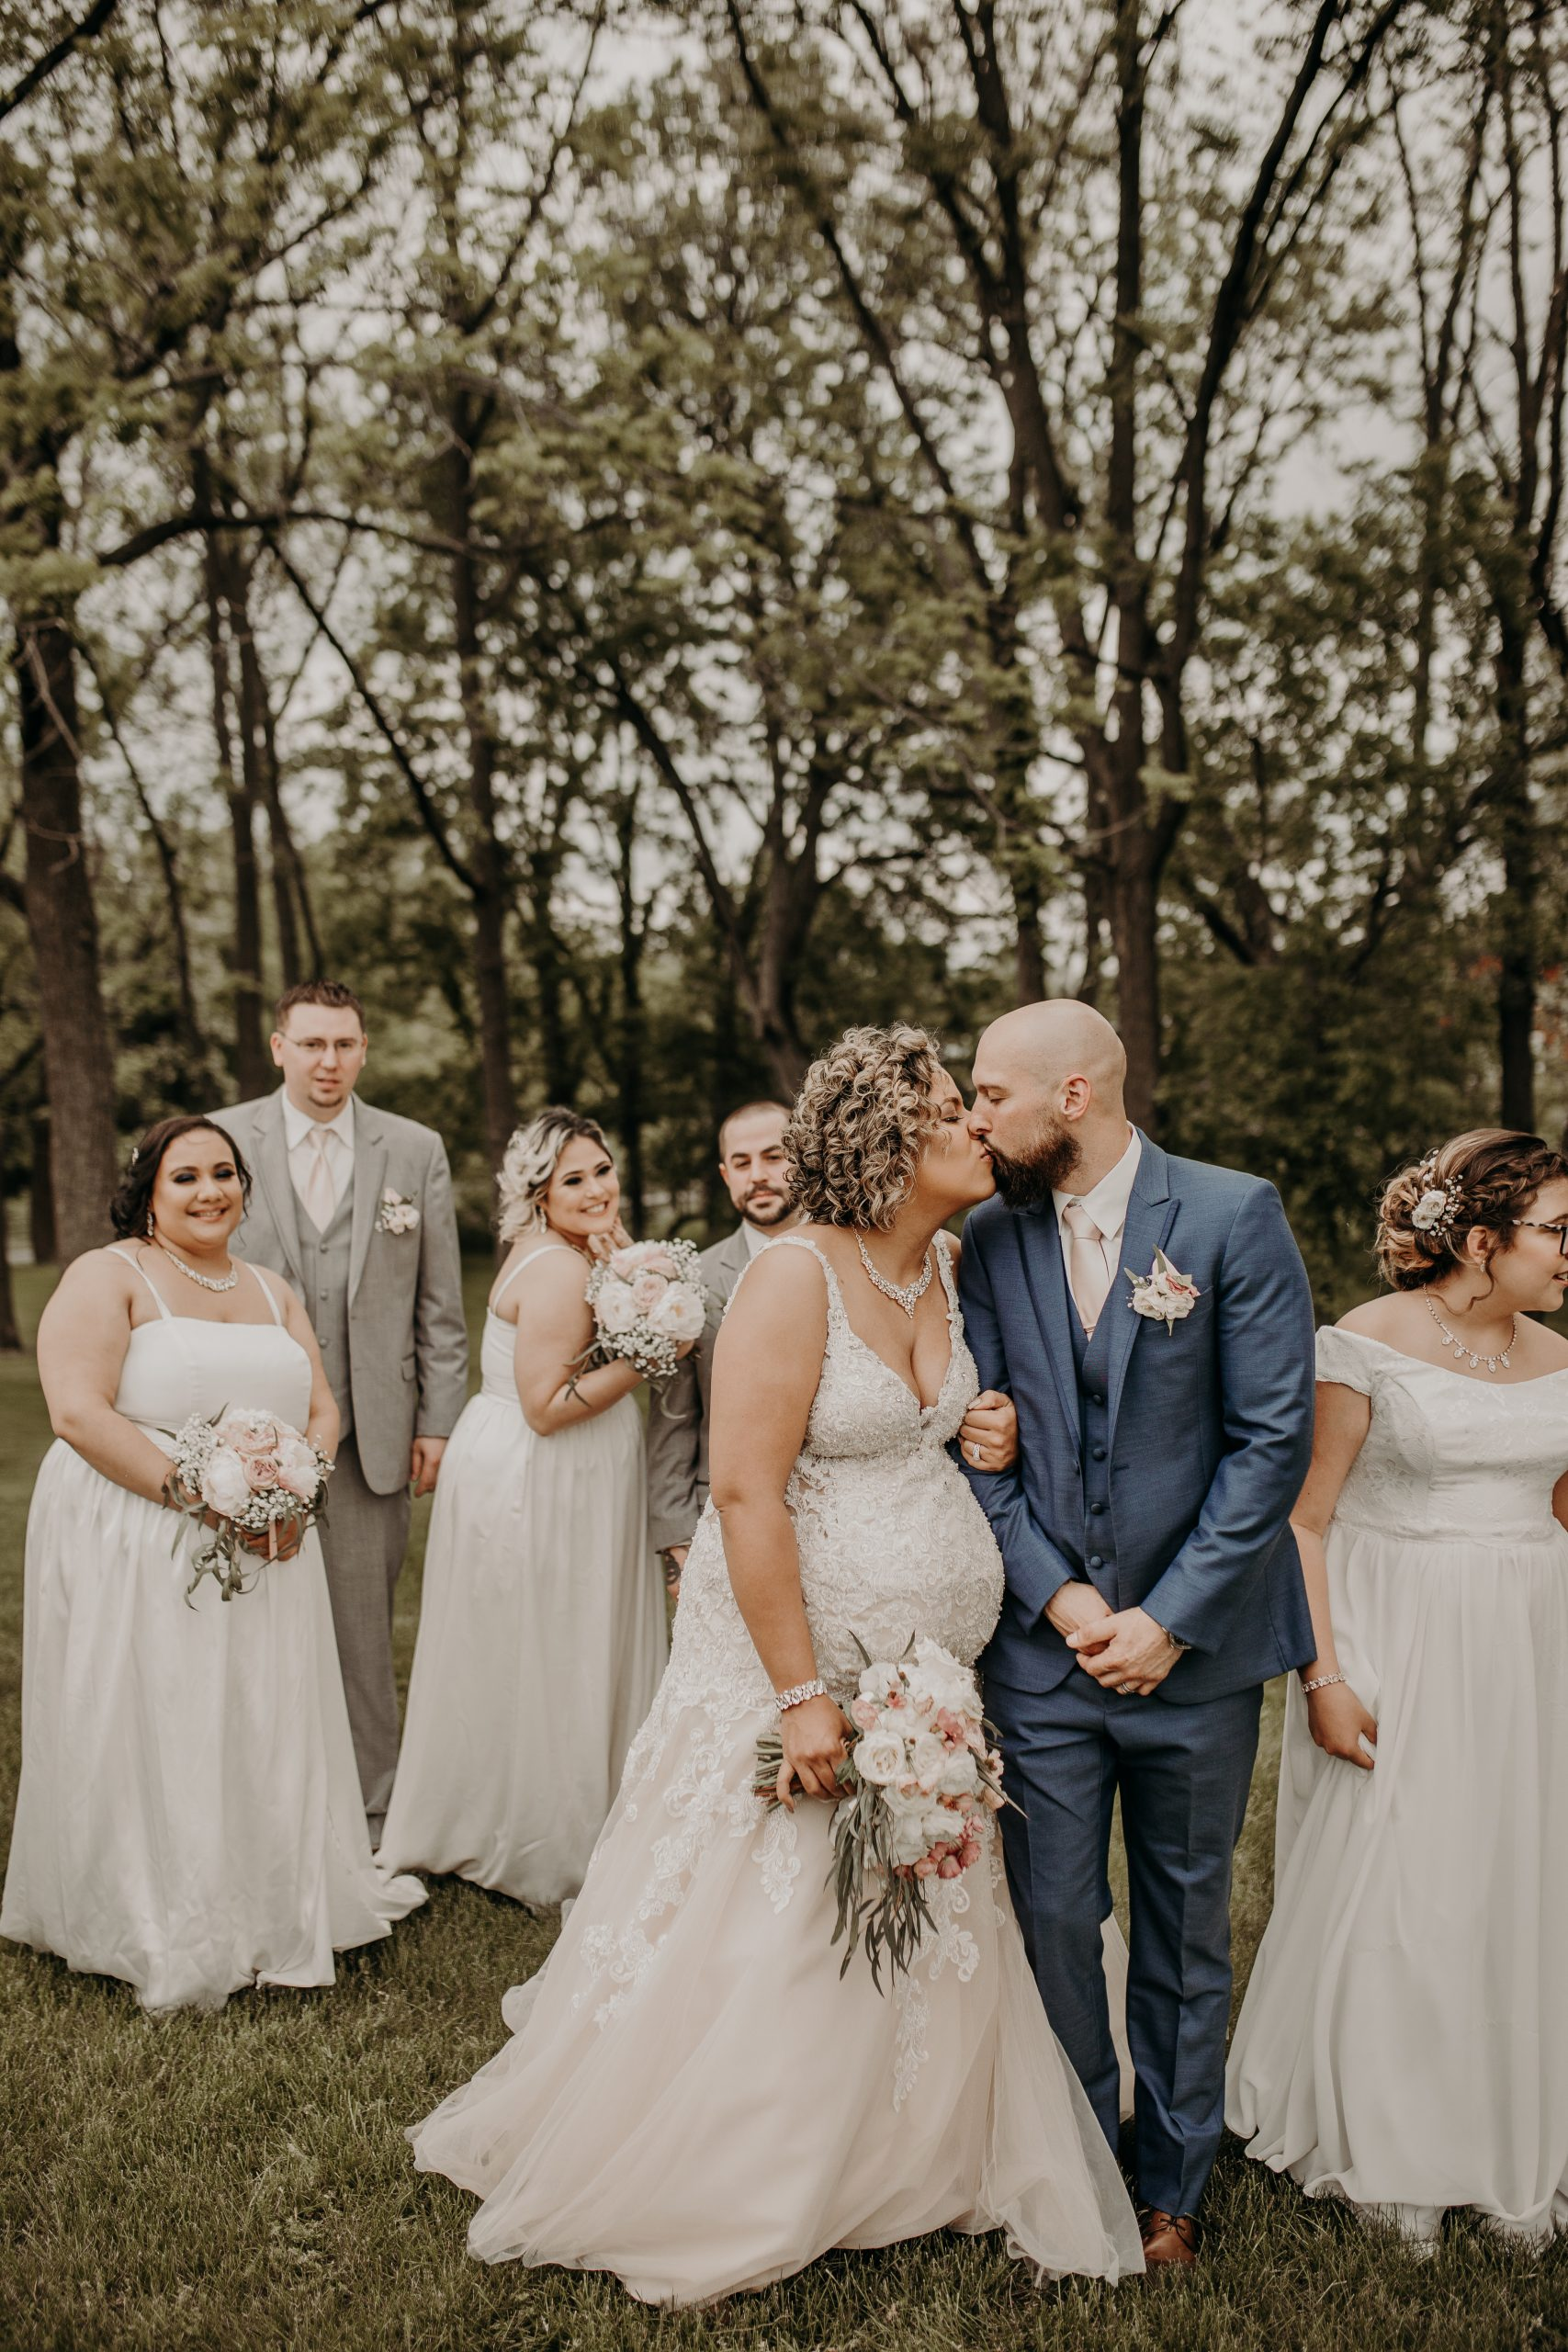 Everyone is giddy and full of joy for the newly weds. Greens in the background add depth and tie into the theme. Christine and Richard wed on the Chestnut Hill Villa grounds on May of 2019. This organic ethereal styled wedding was captured by Garnet Dahlia Photography and featured on Dream Weddings.